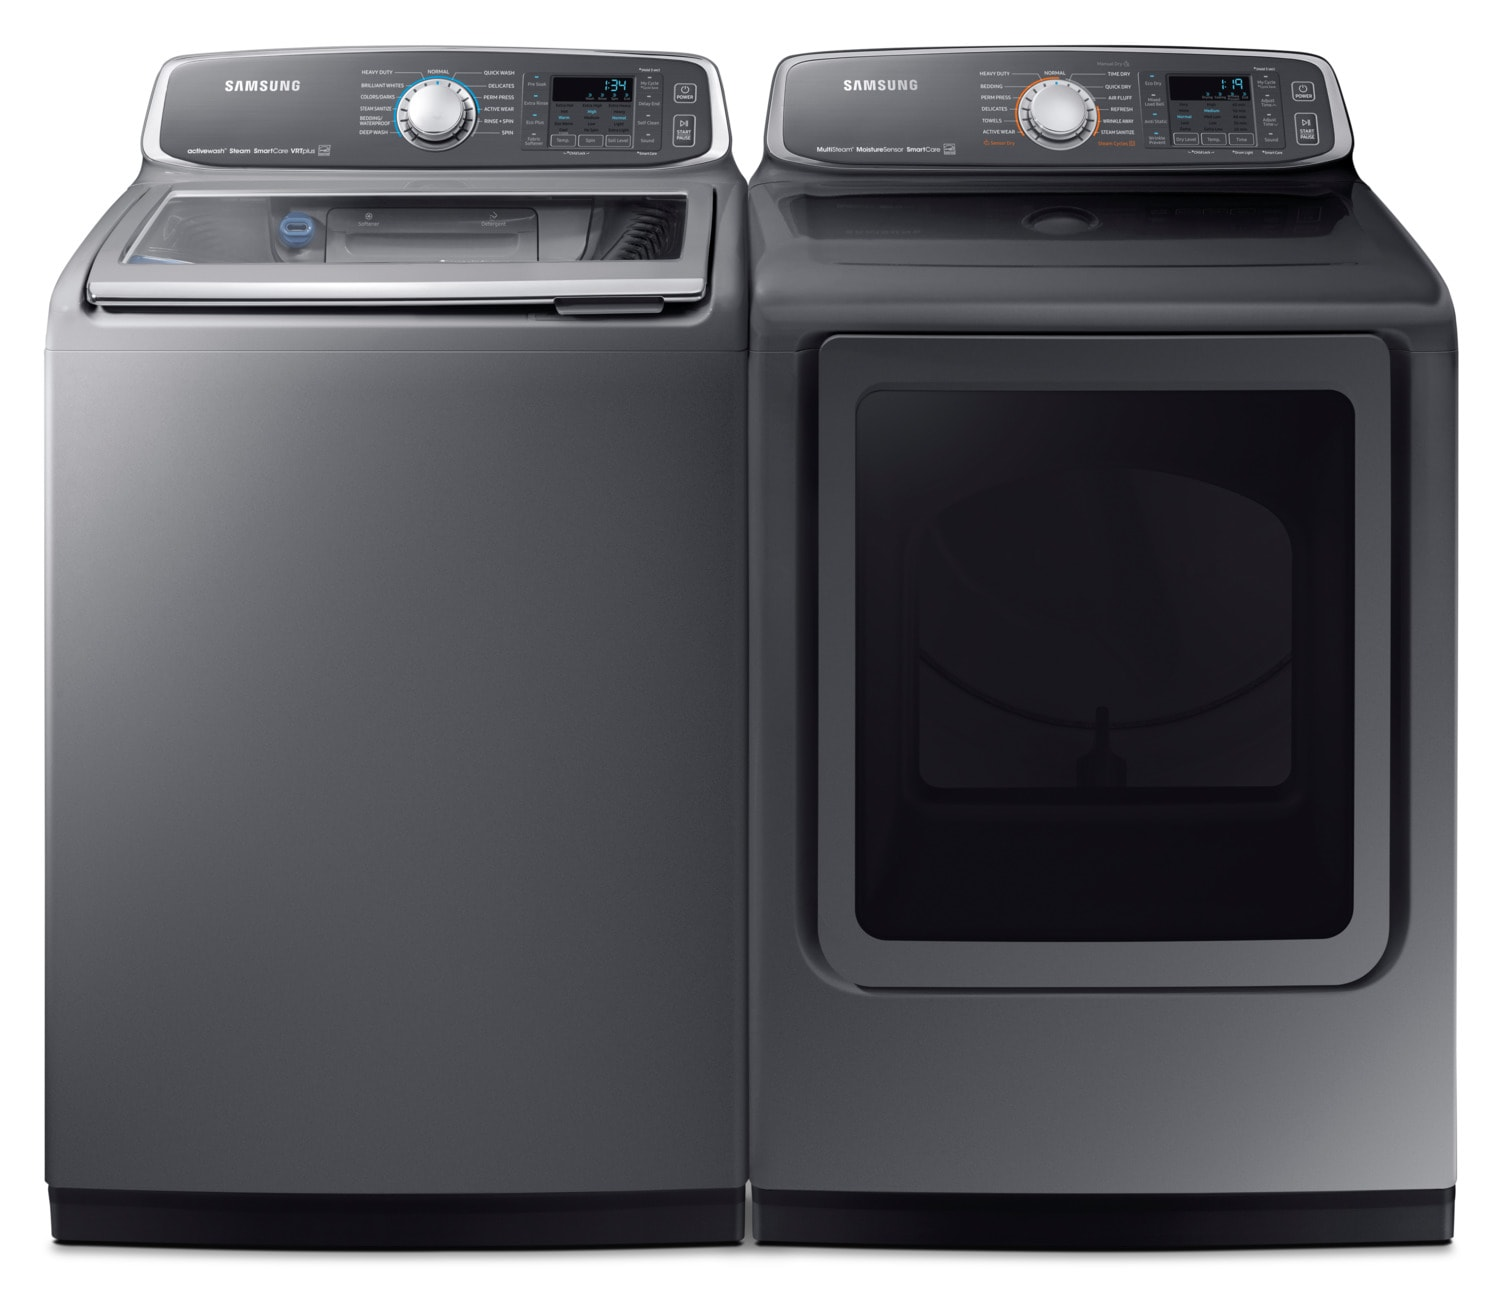 Washers and Dryers - Samsung 6.0 Cu. Ft. Top-Load Washer and 7.4 Cu. Ft. Electric Dryer